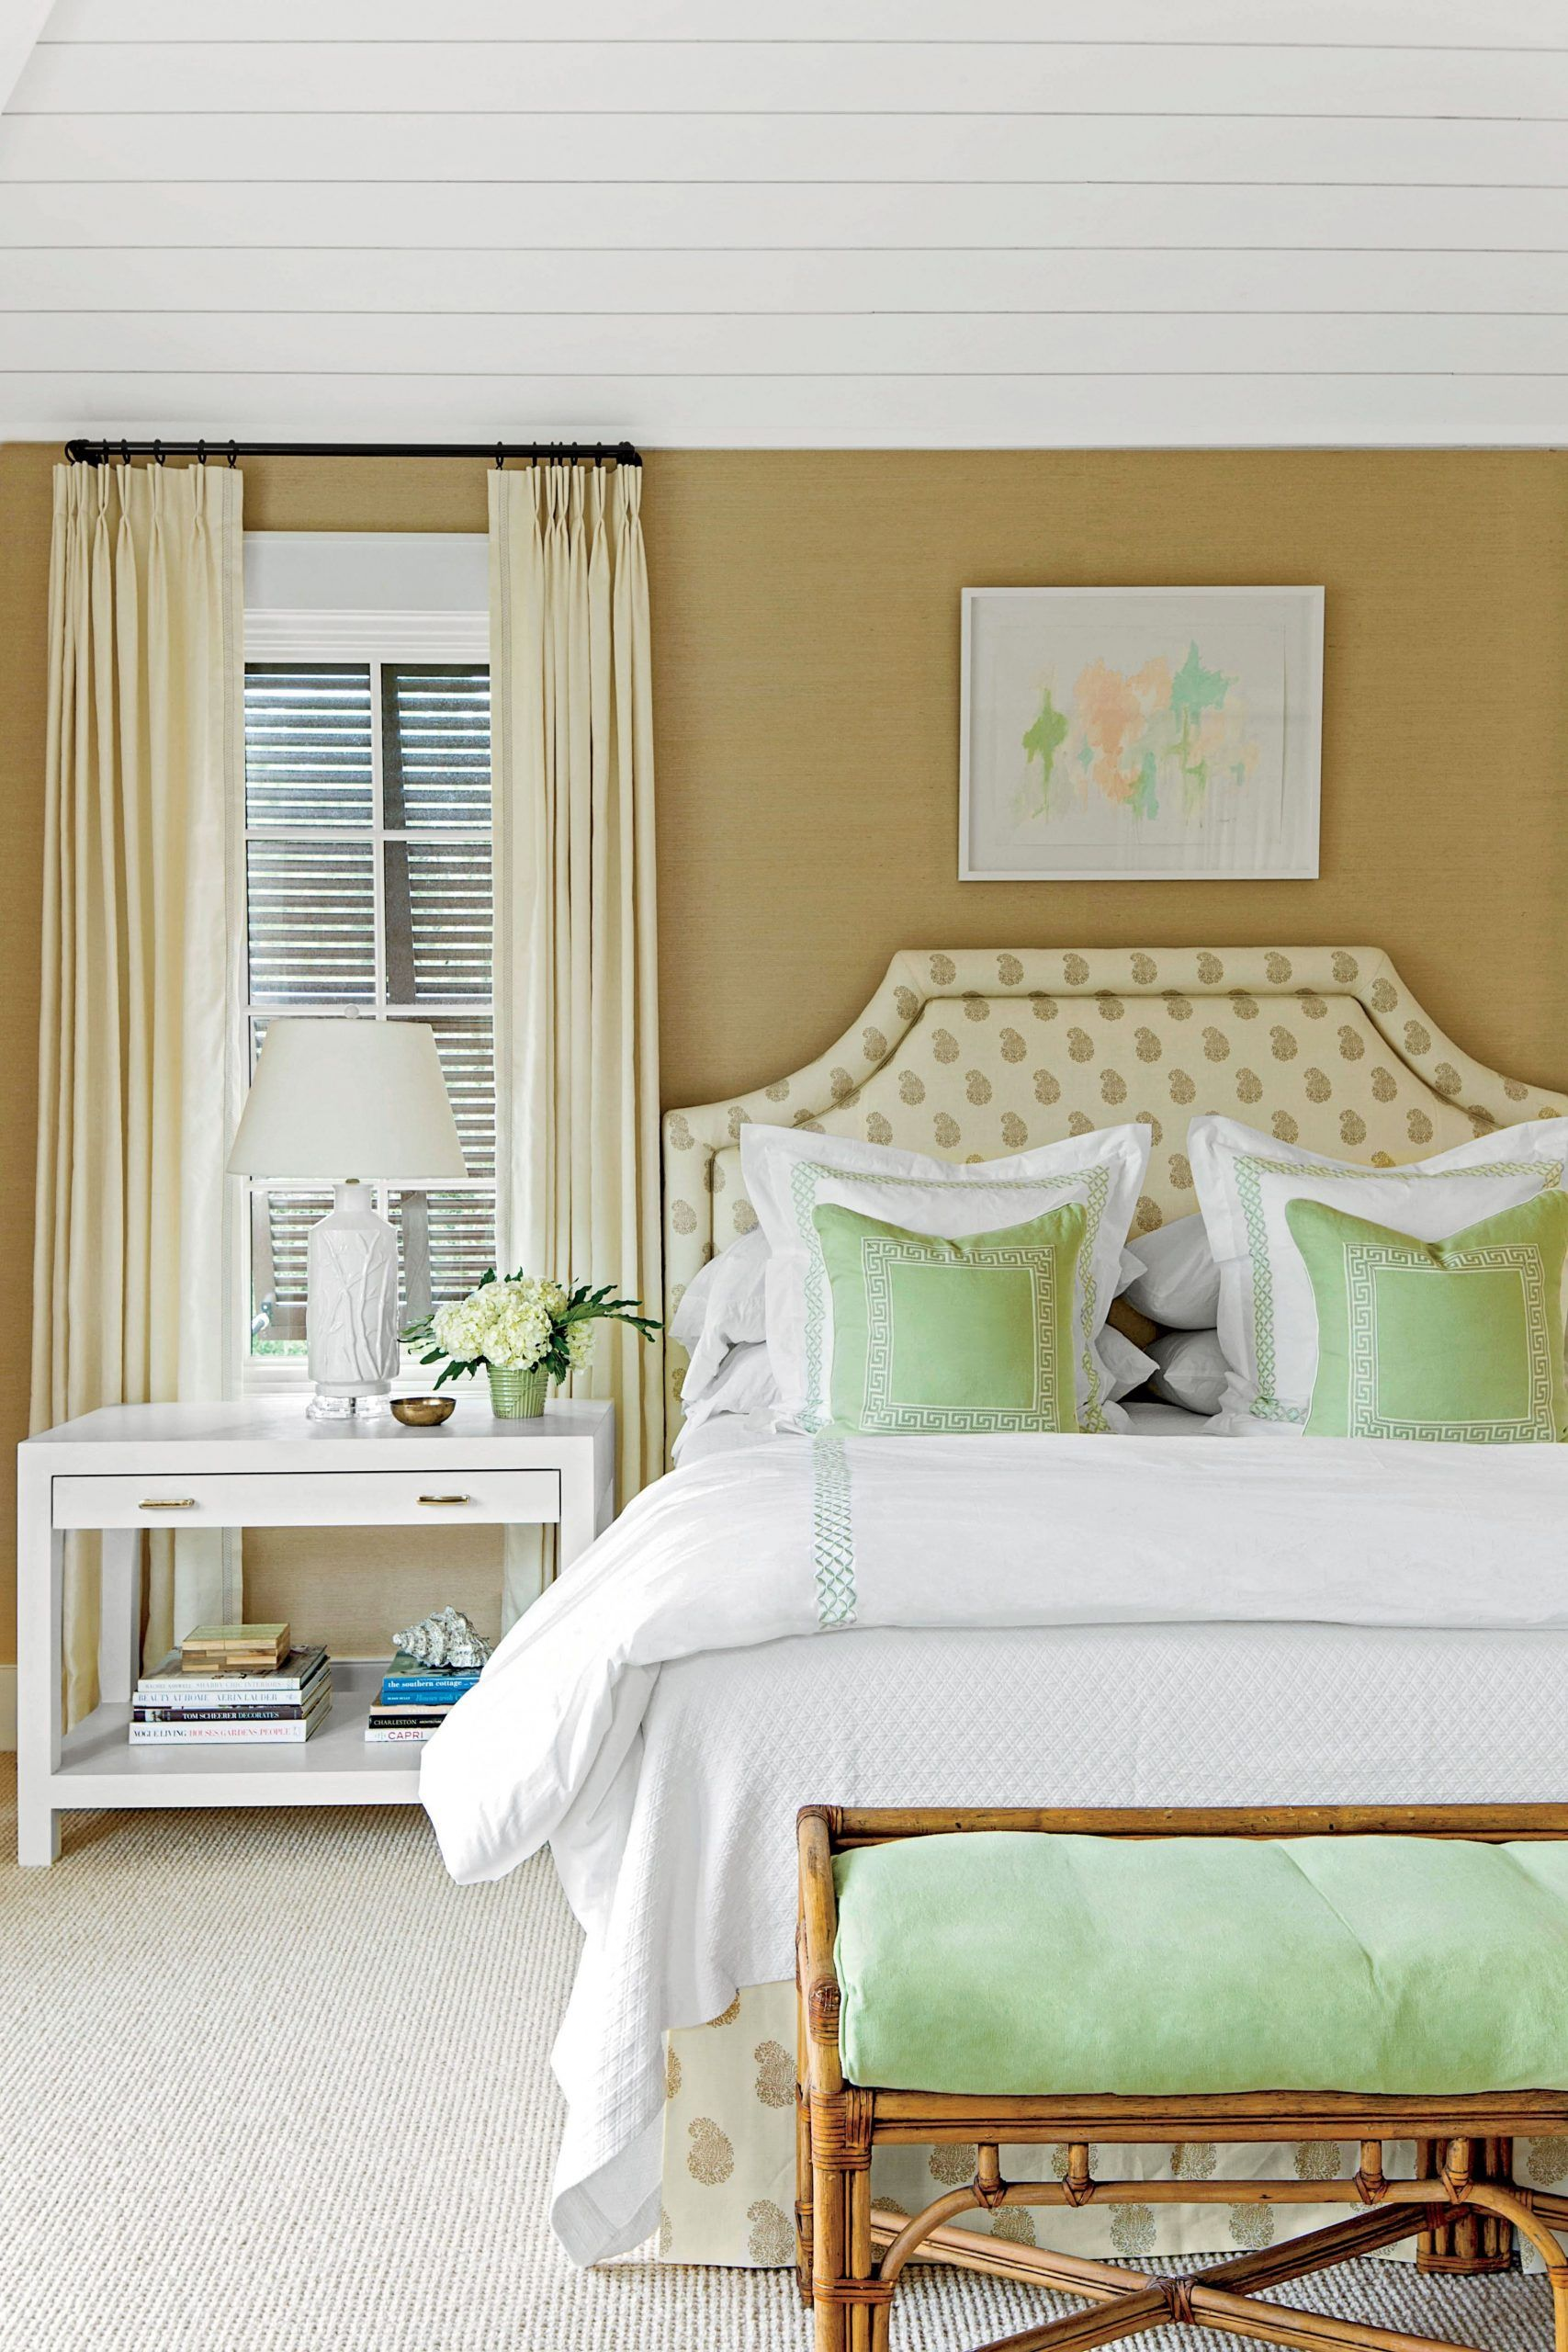 Southern Living Guest Bedroom Ideas Master Bedrooms Decor Bedroom Design Guest Bedrooms Guest room decorating ideas